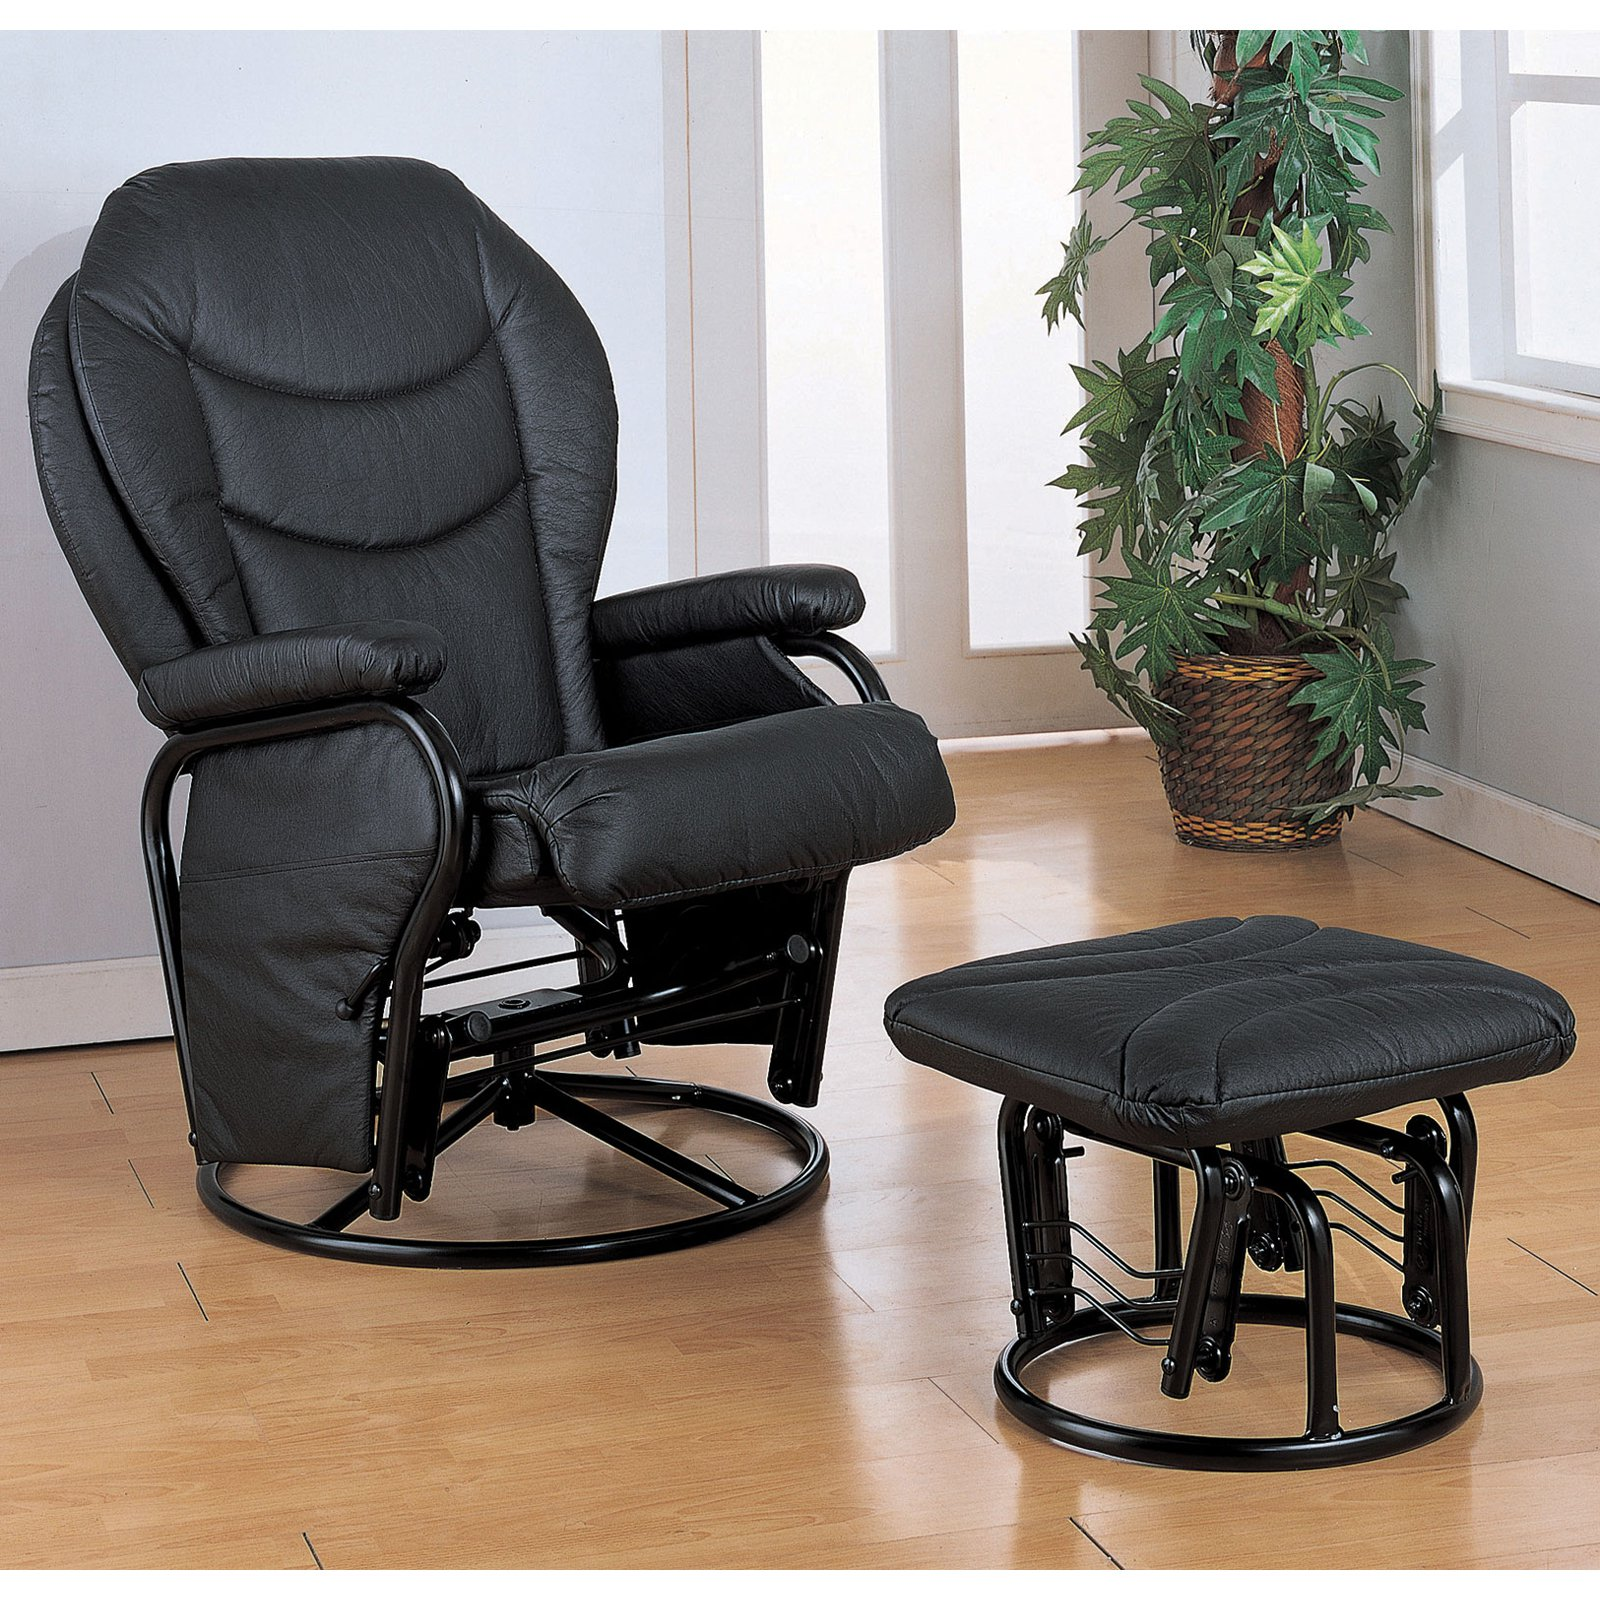 Coaster Leatherette Cushion Swivel Glider and Ottoman by Coaster Company